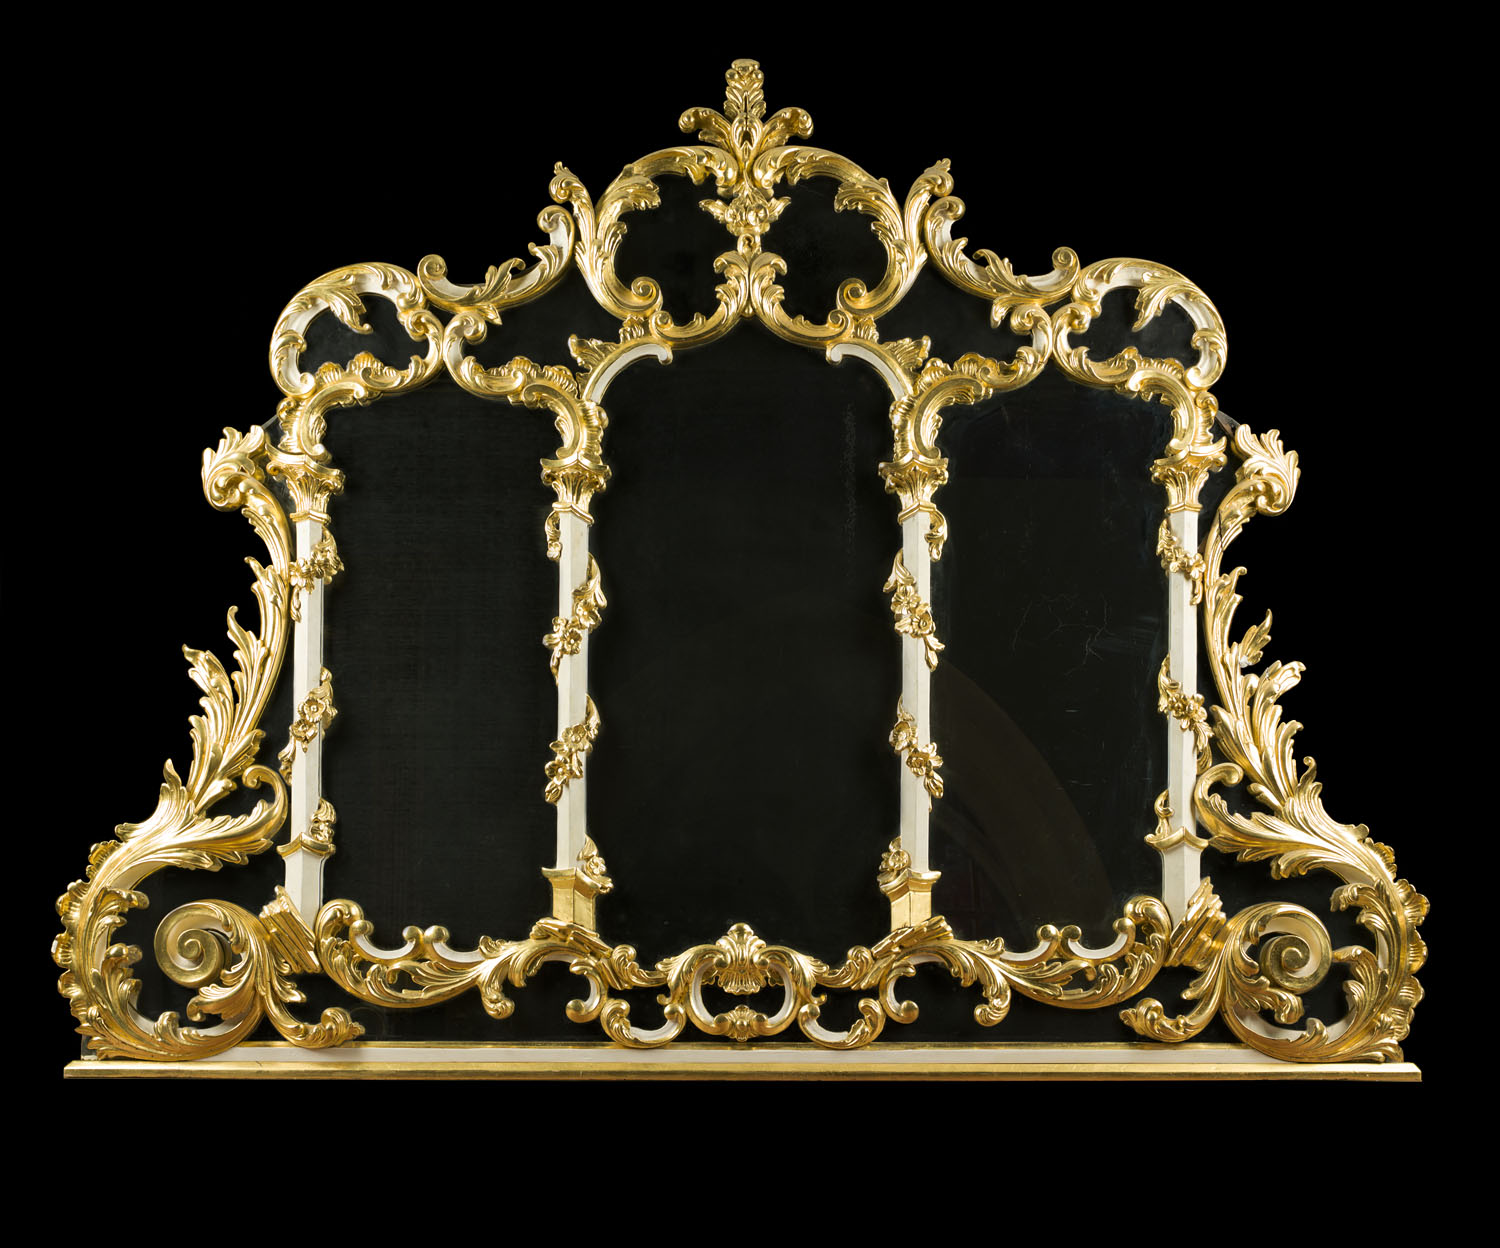 A large giltwood Rococo Revival overmantel mirror